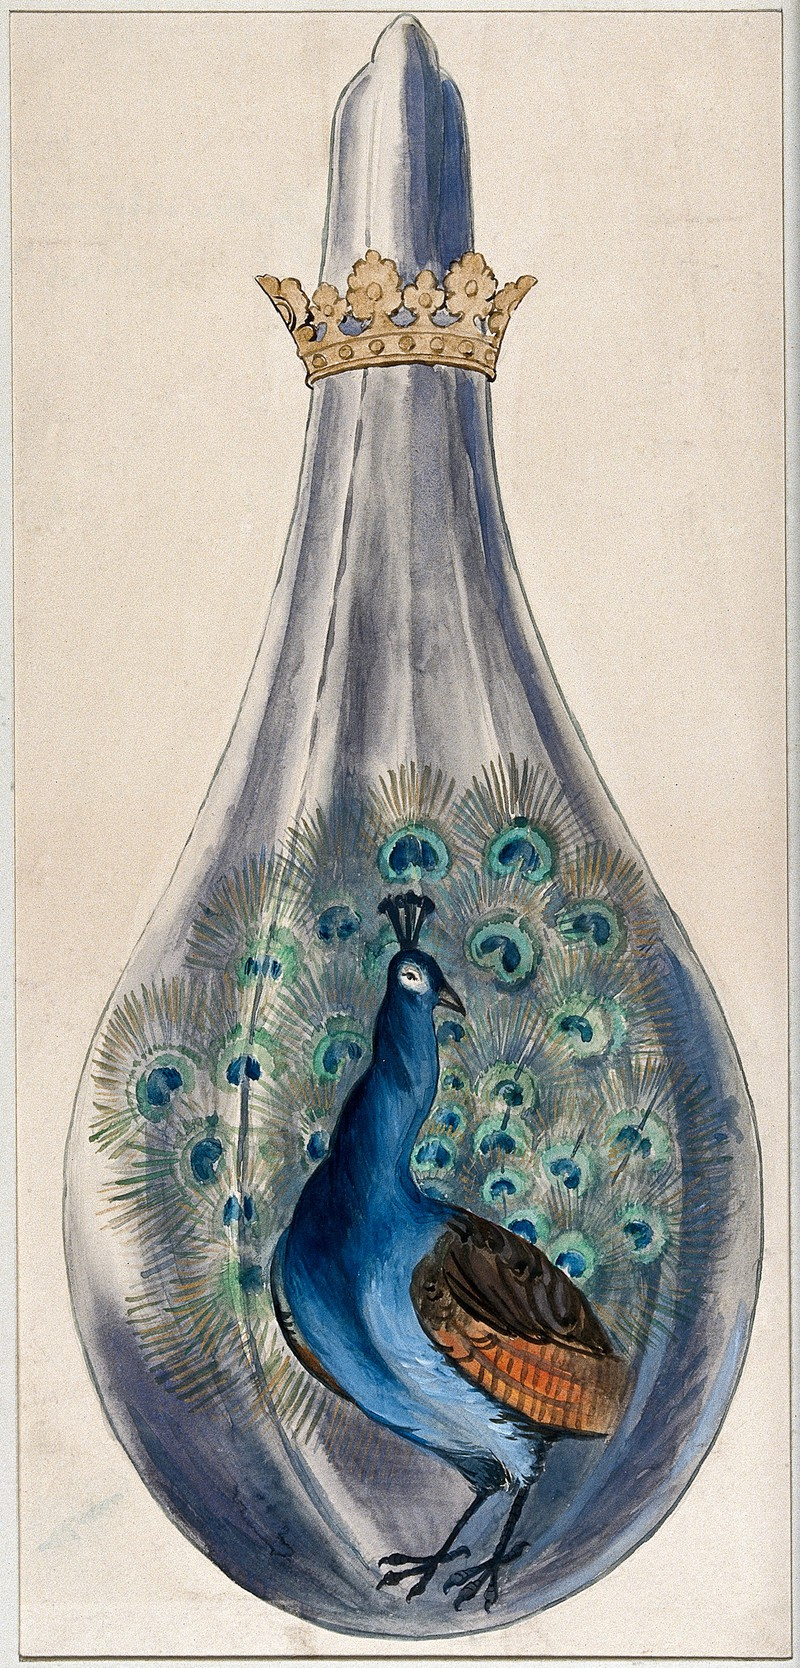 A peacock in a crowned alchemical flask; representing the stage in the alchemical process when the substance breaks out into many colours. Credit: Wellcome Collection. CC By 4.0